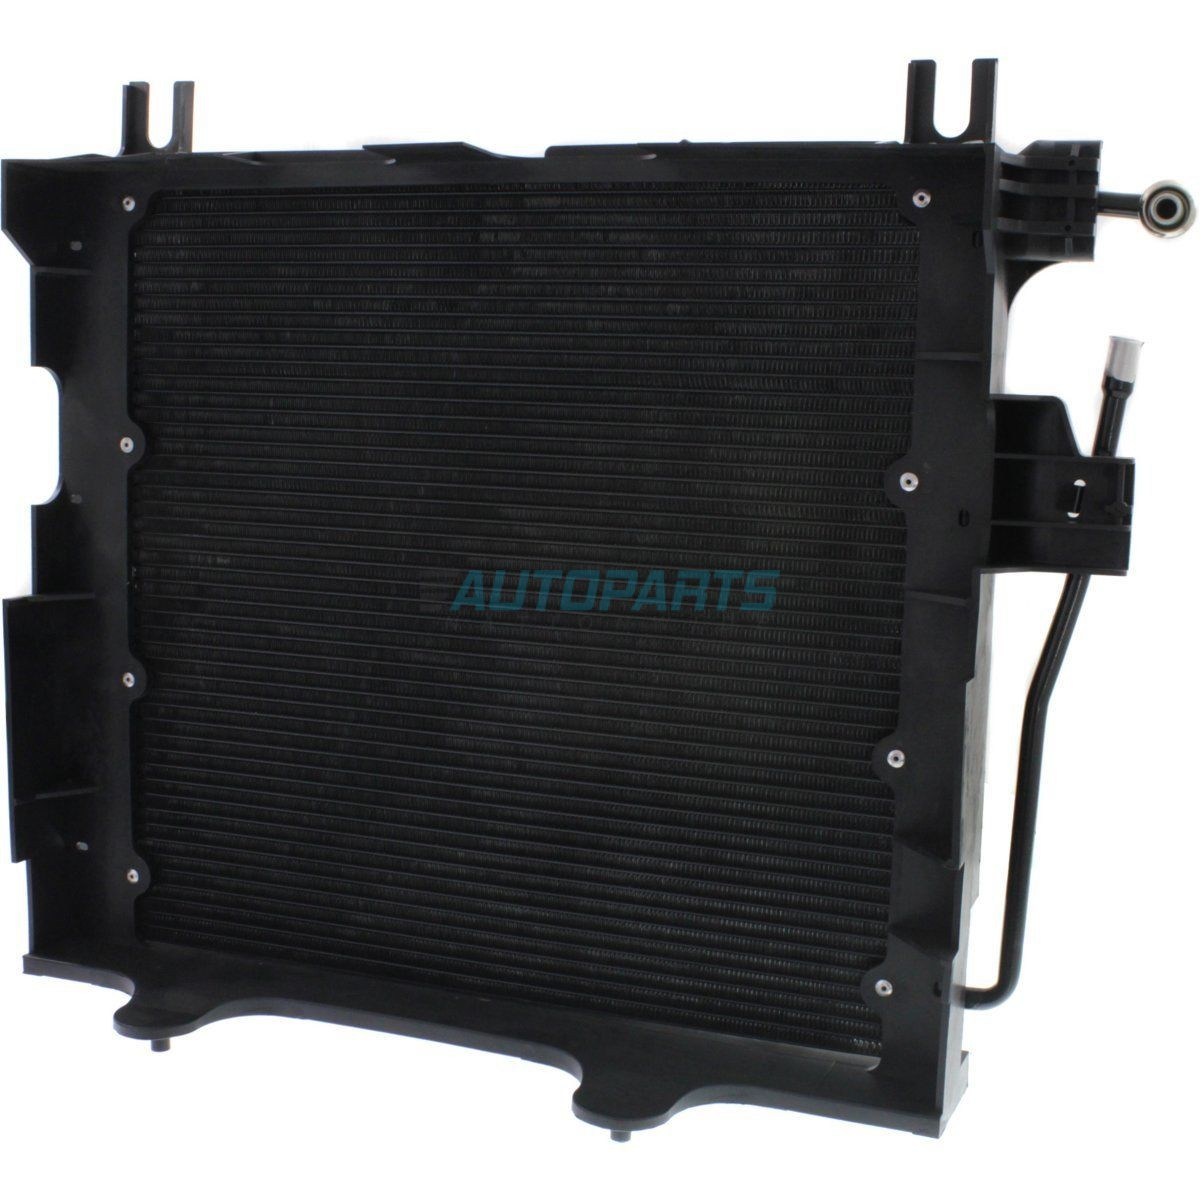 small resolution of details about new ac condenser cnddpi4922 fits 1998 1999 dodge dakota ch3030120